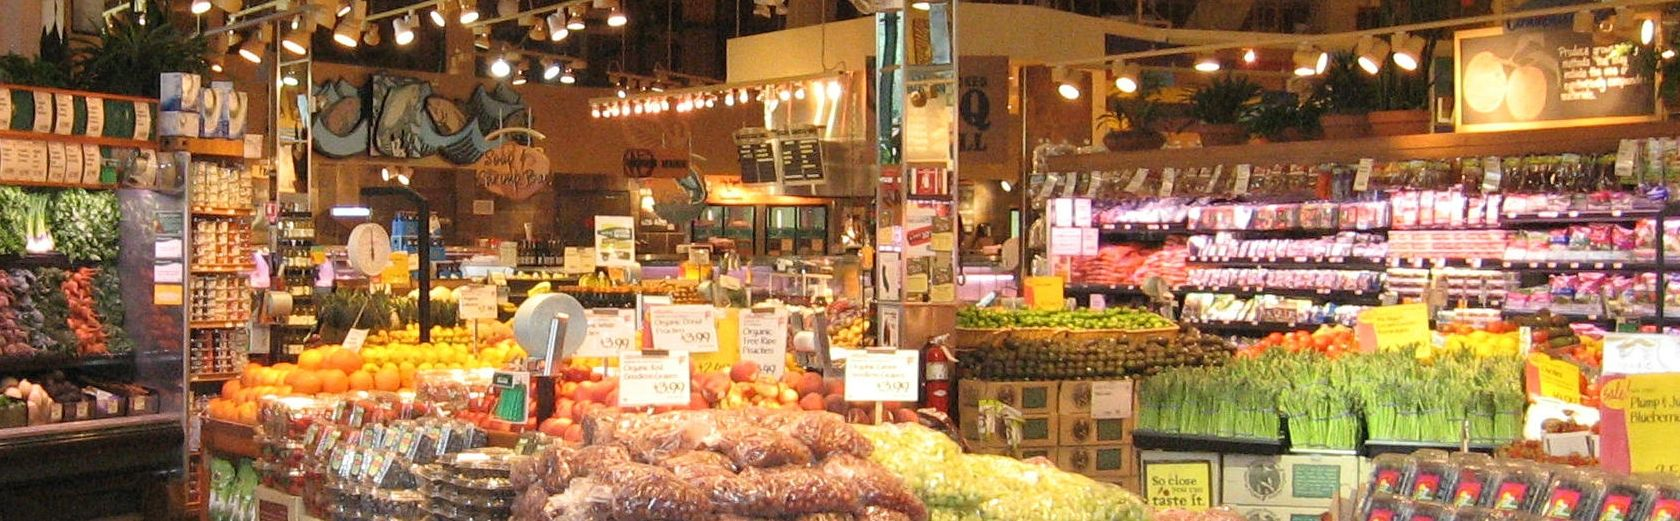 Ann arbor store whole foods market whole food recipes